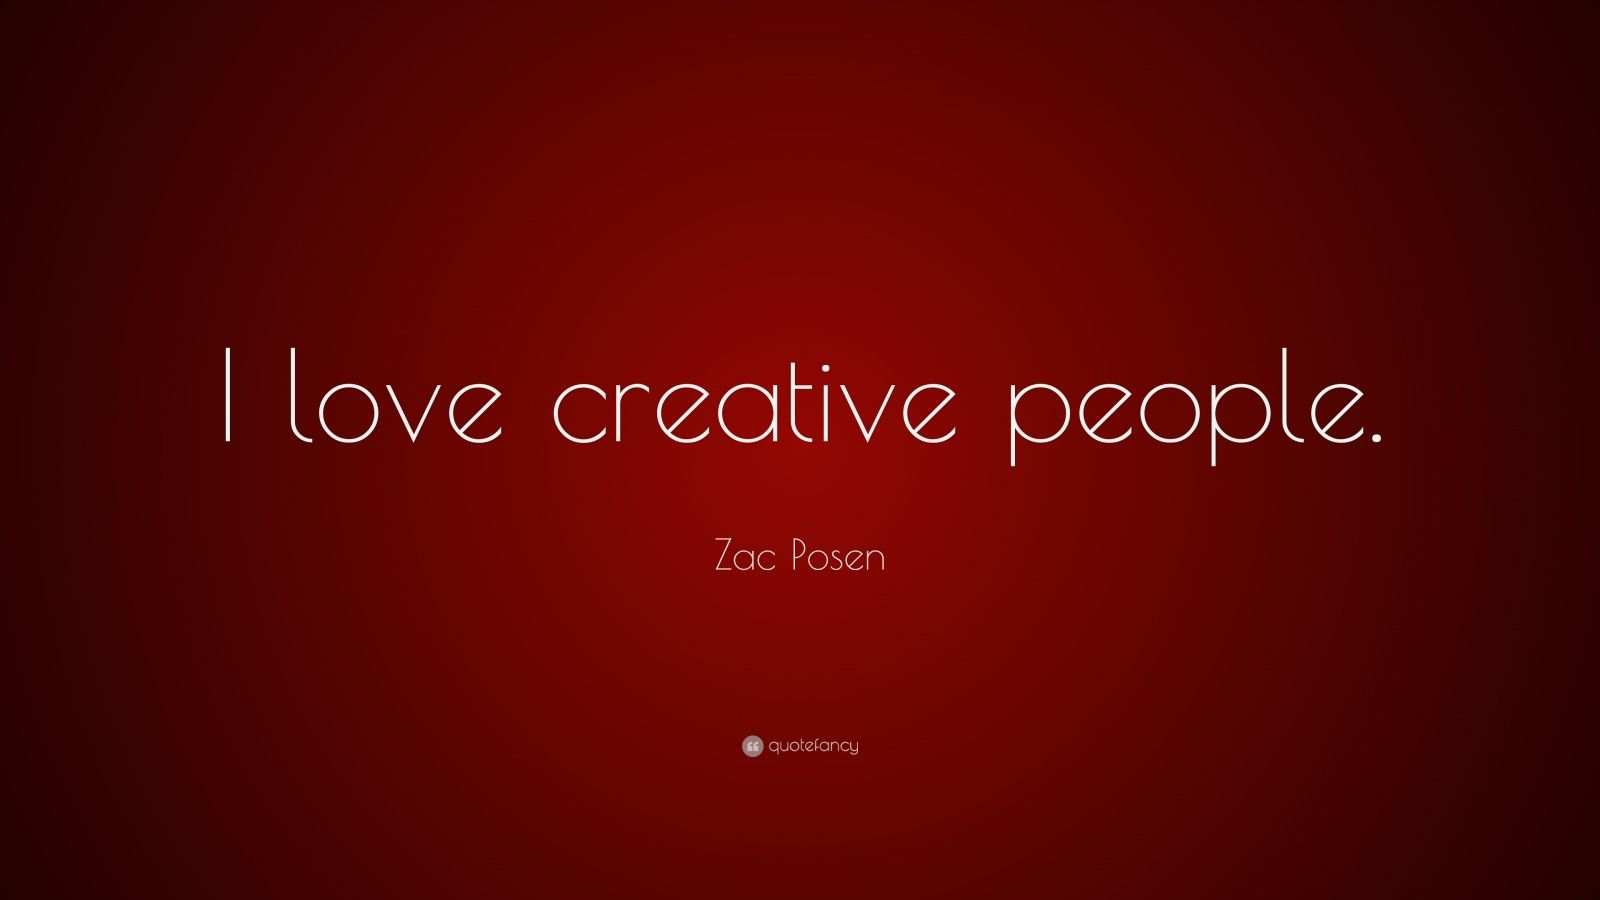 zac posen quote i love creative people 7 wallpapers. Black Bedroom Furniture Sets. Home Design Ideas